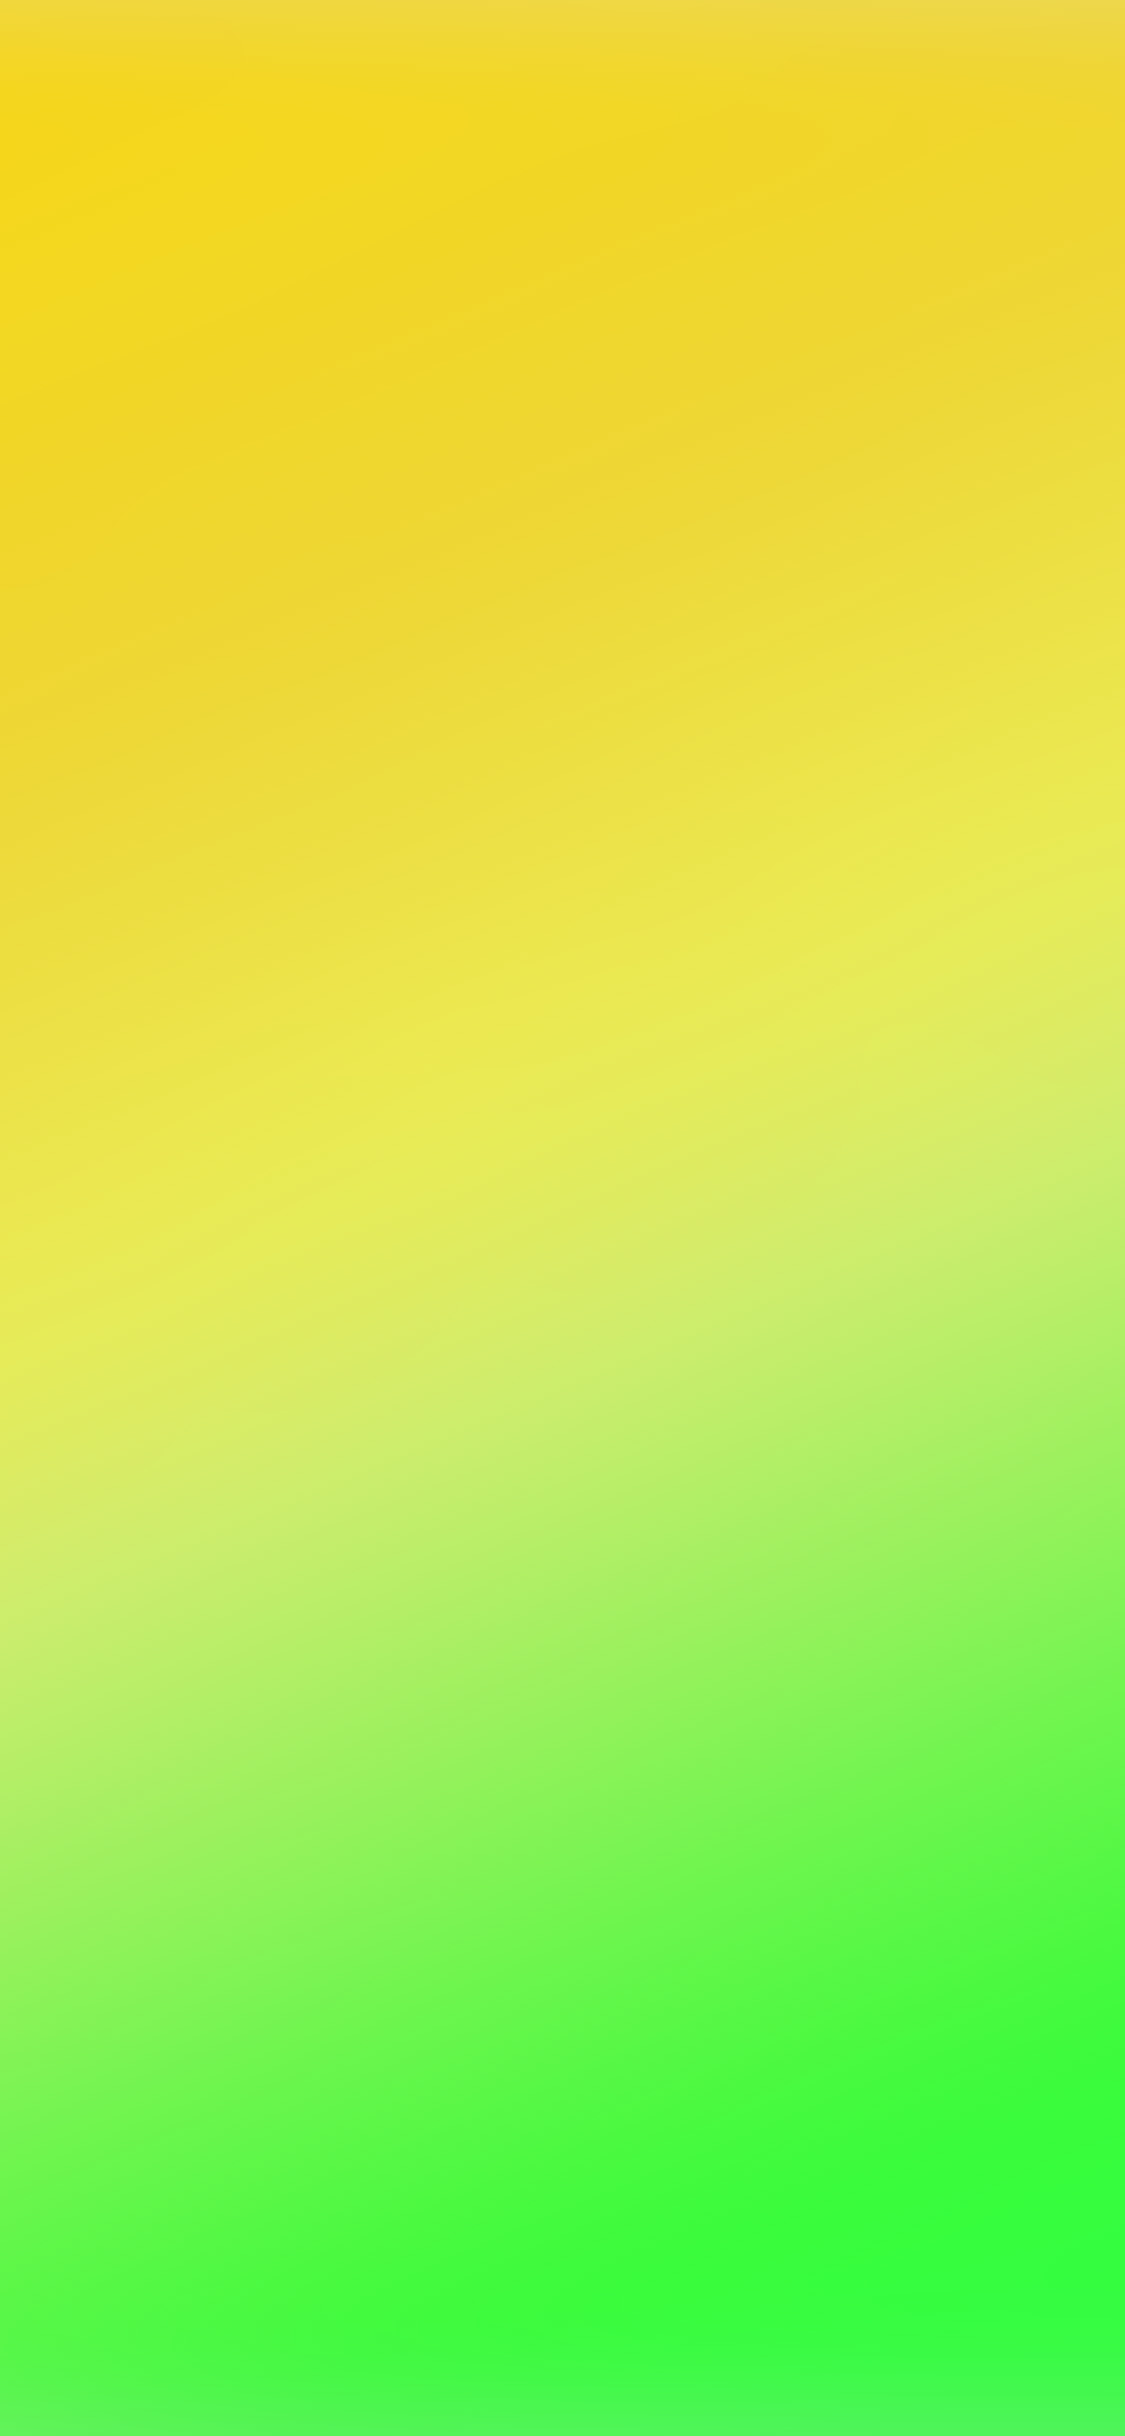 Yellow Green Blur Gradation Iphone X Wallpapers Free Download